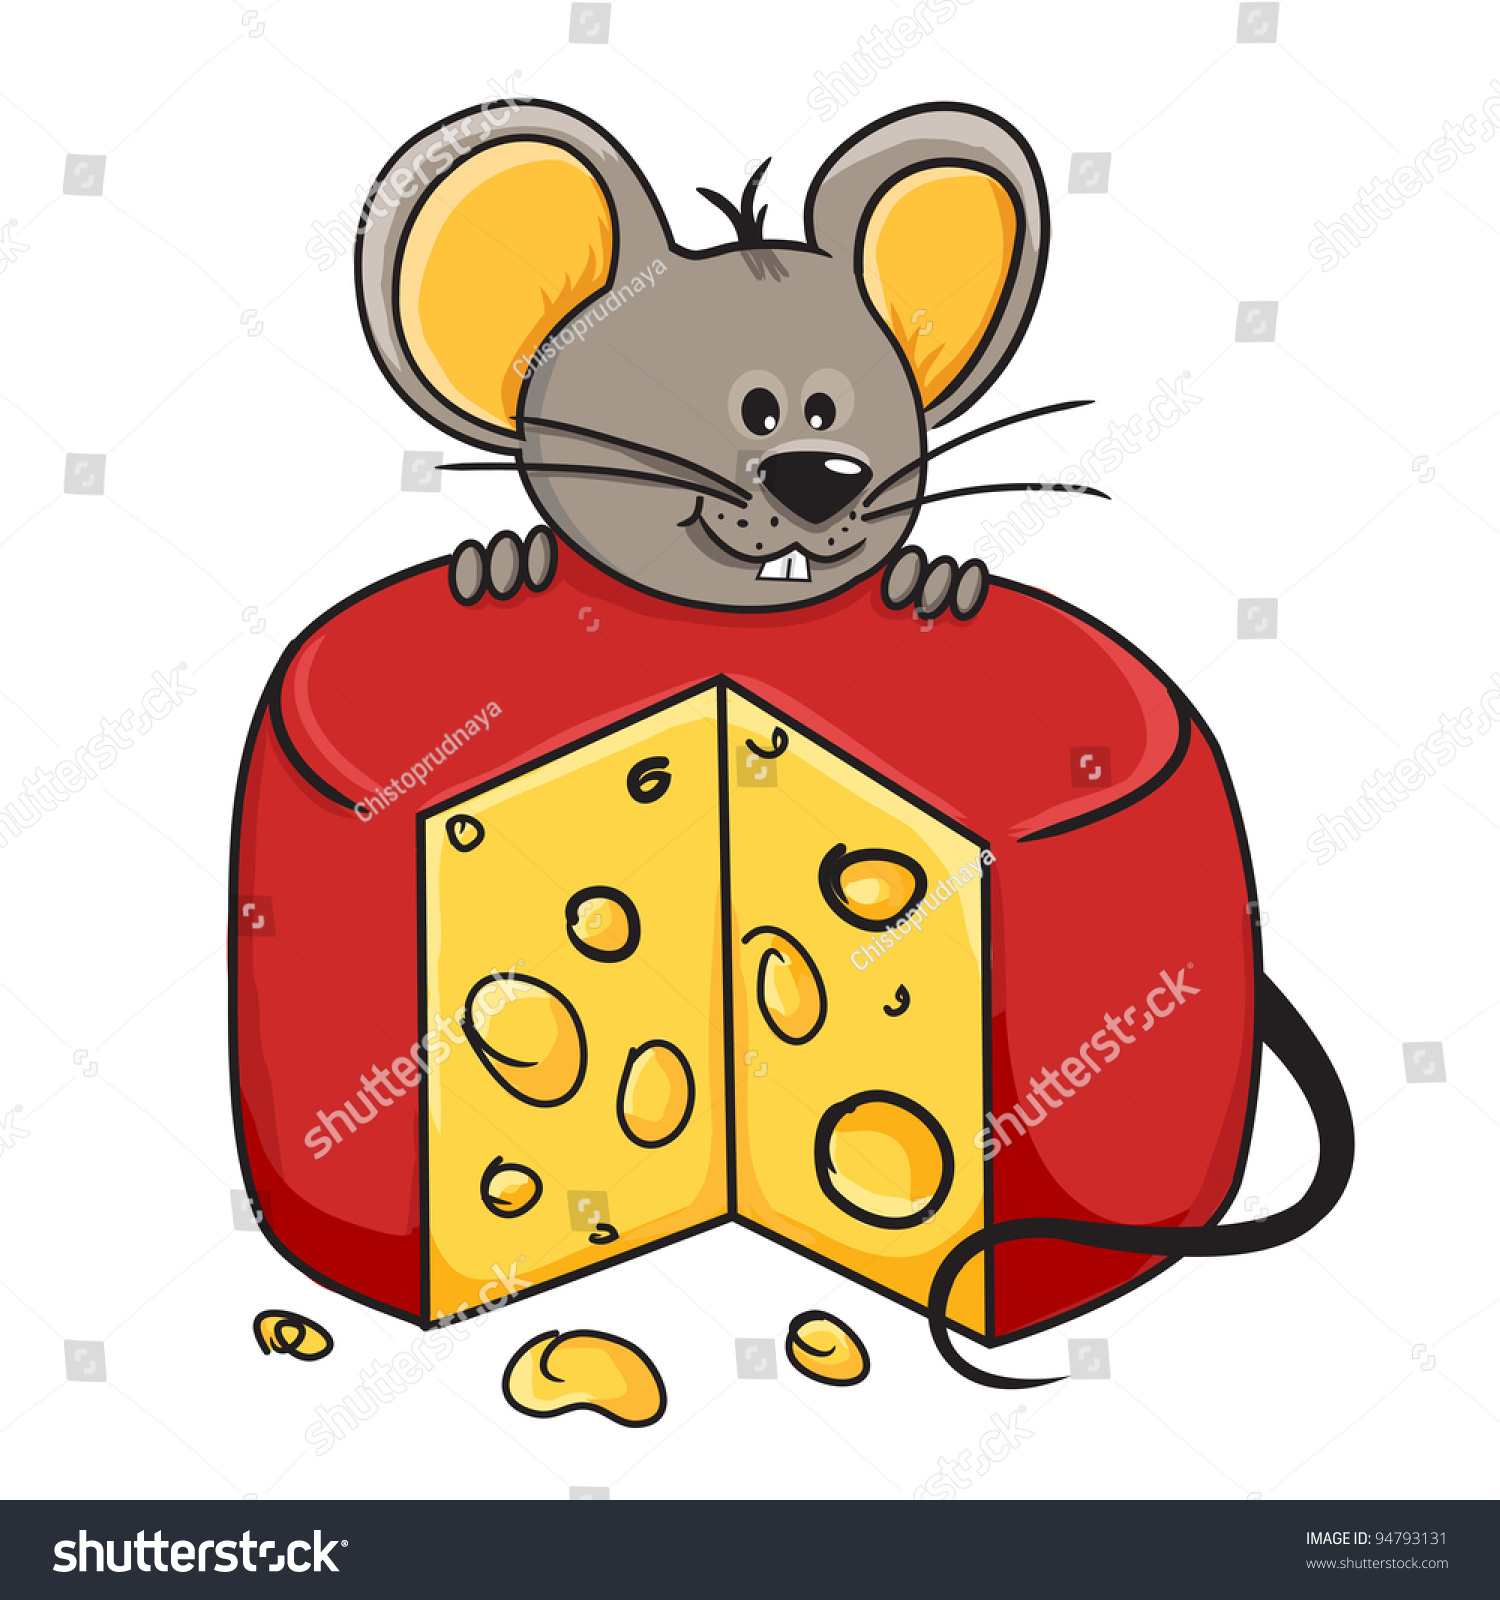 Cartoon Mouse Holding Wedge Cheese Stock Vector 94793131 ...